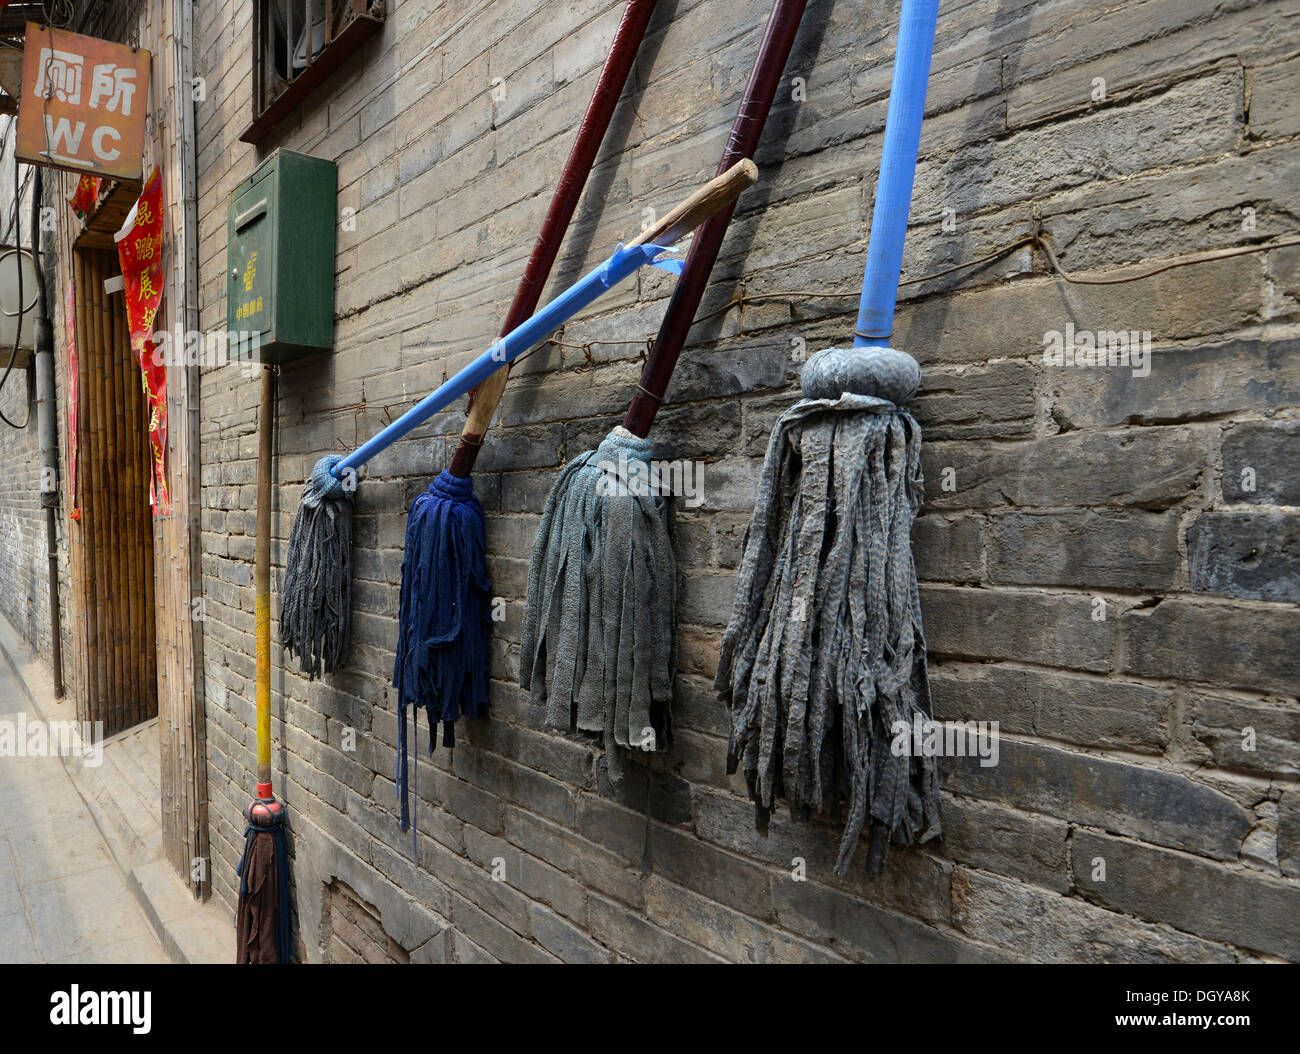 Mops outside a Chinese toilet block, historic city centre of Pingyao, Shanxi, China, Asia - Stock Image